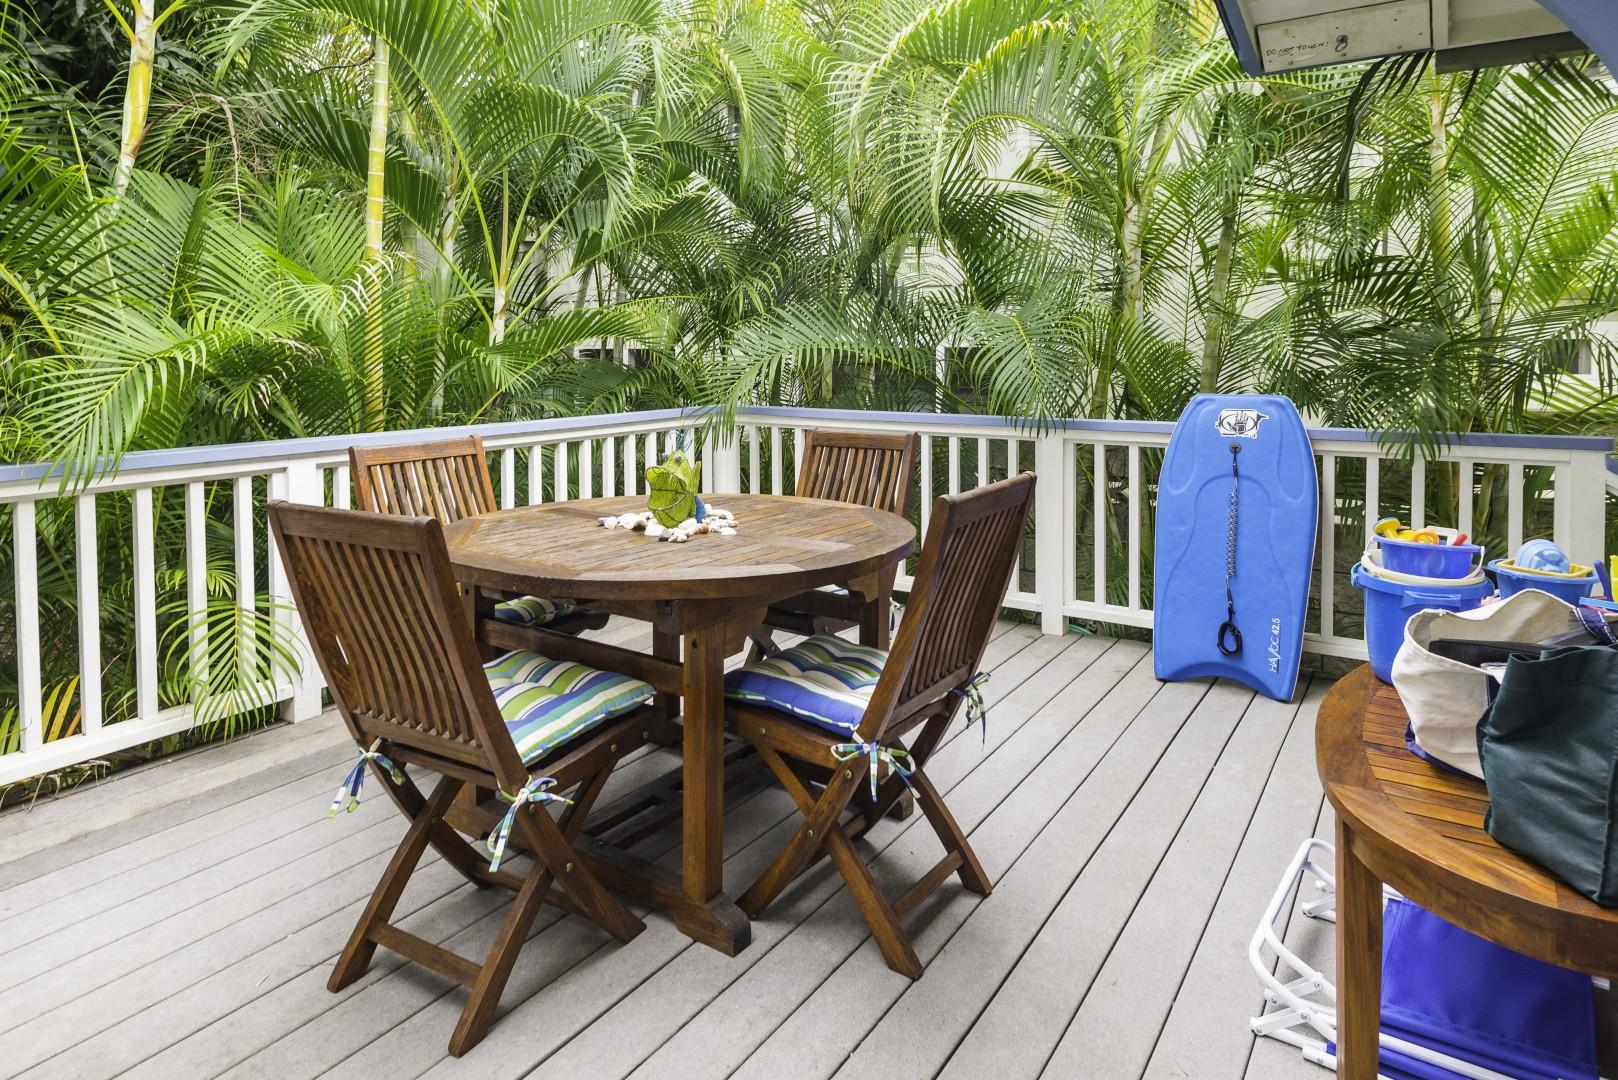 Linger over an open-air meal on the lanai.